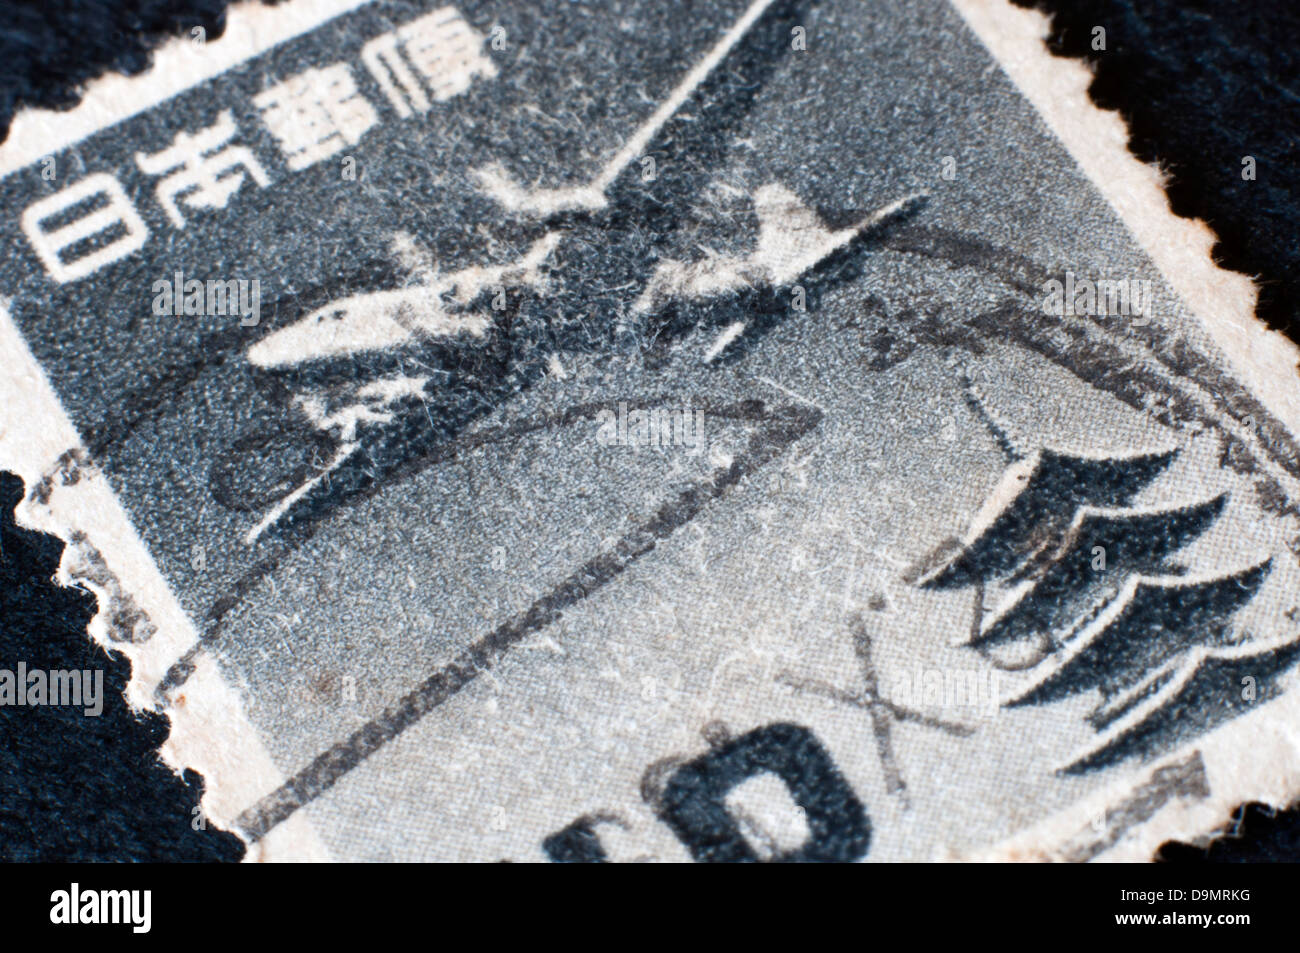 old japanese postage stamp in studio setting - Stock Image